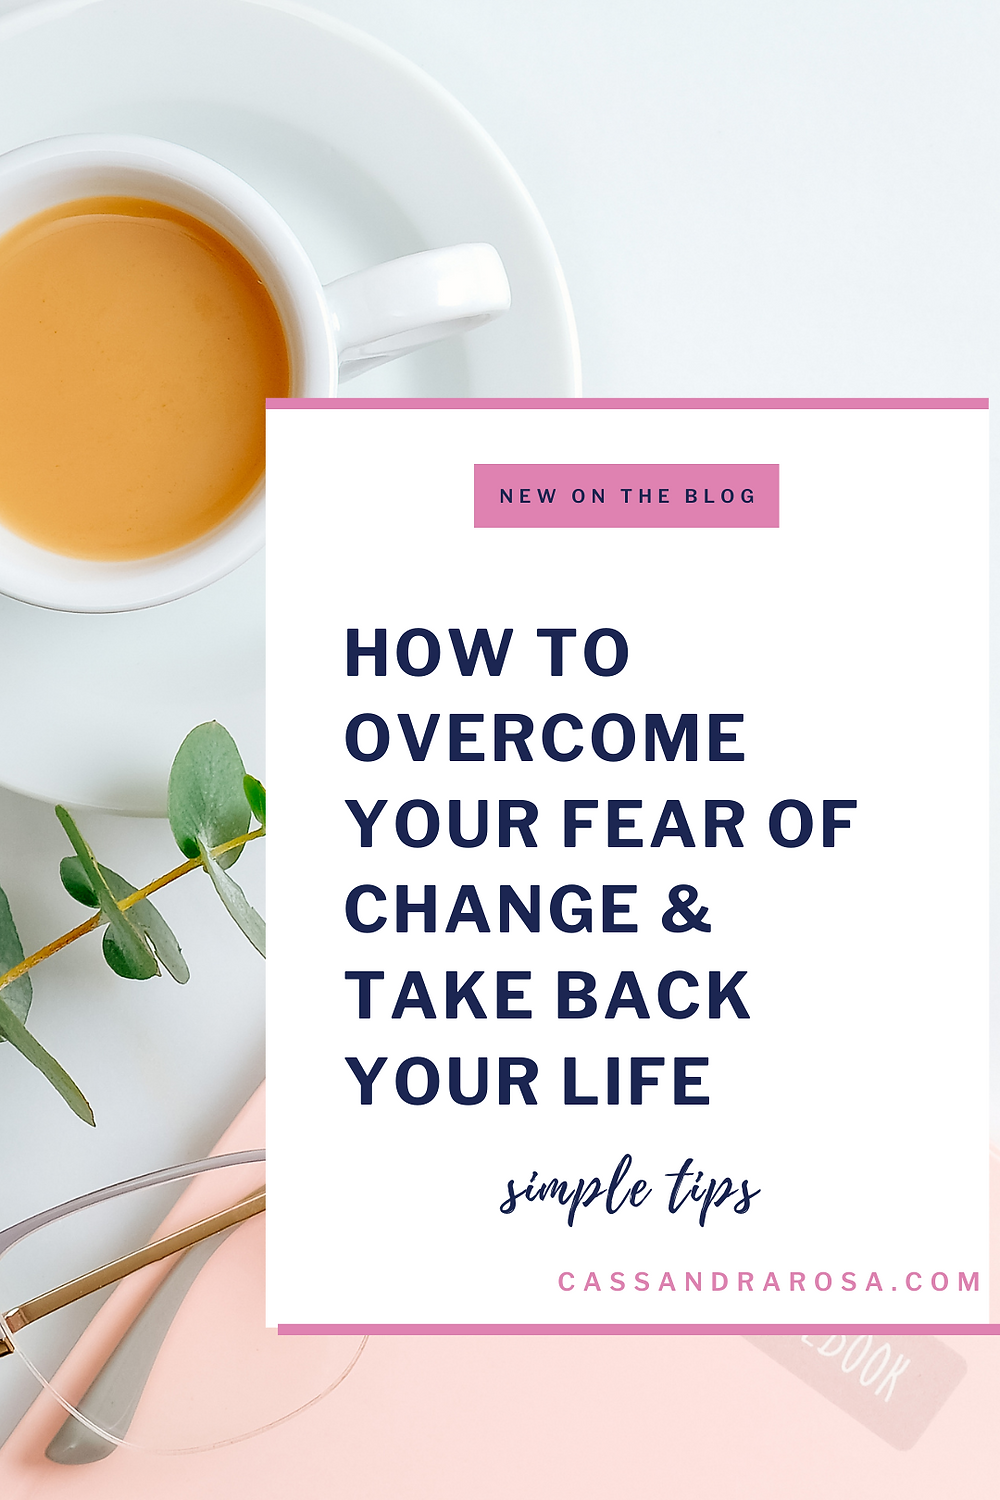 How to overcome the fear of change & take back your life